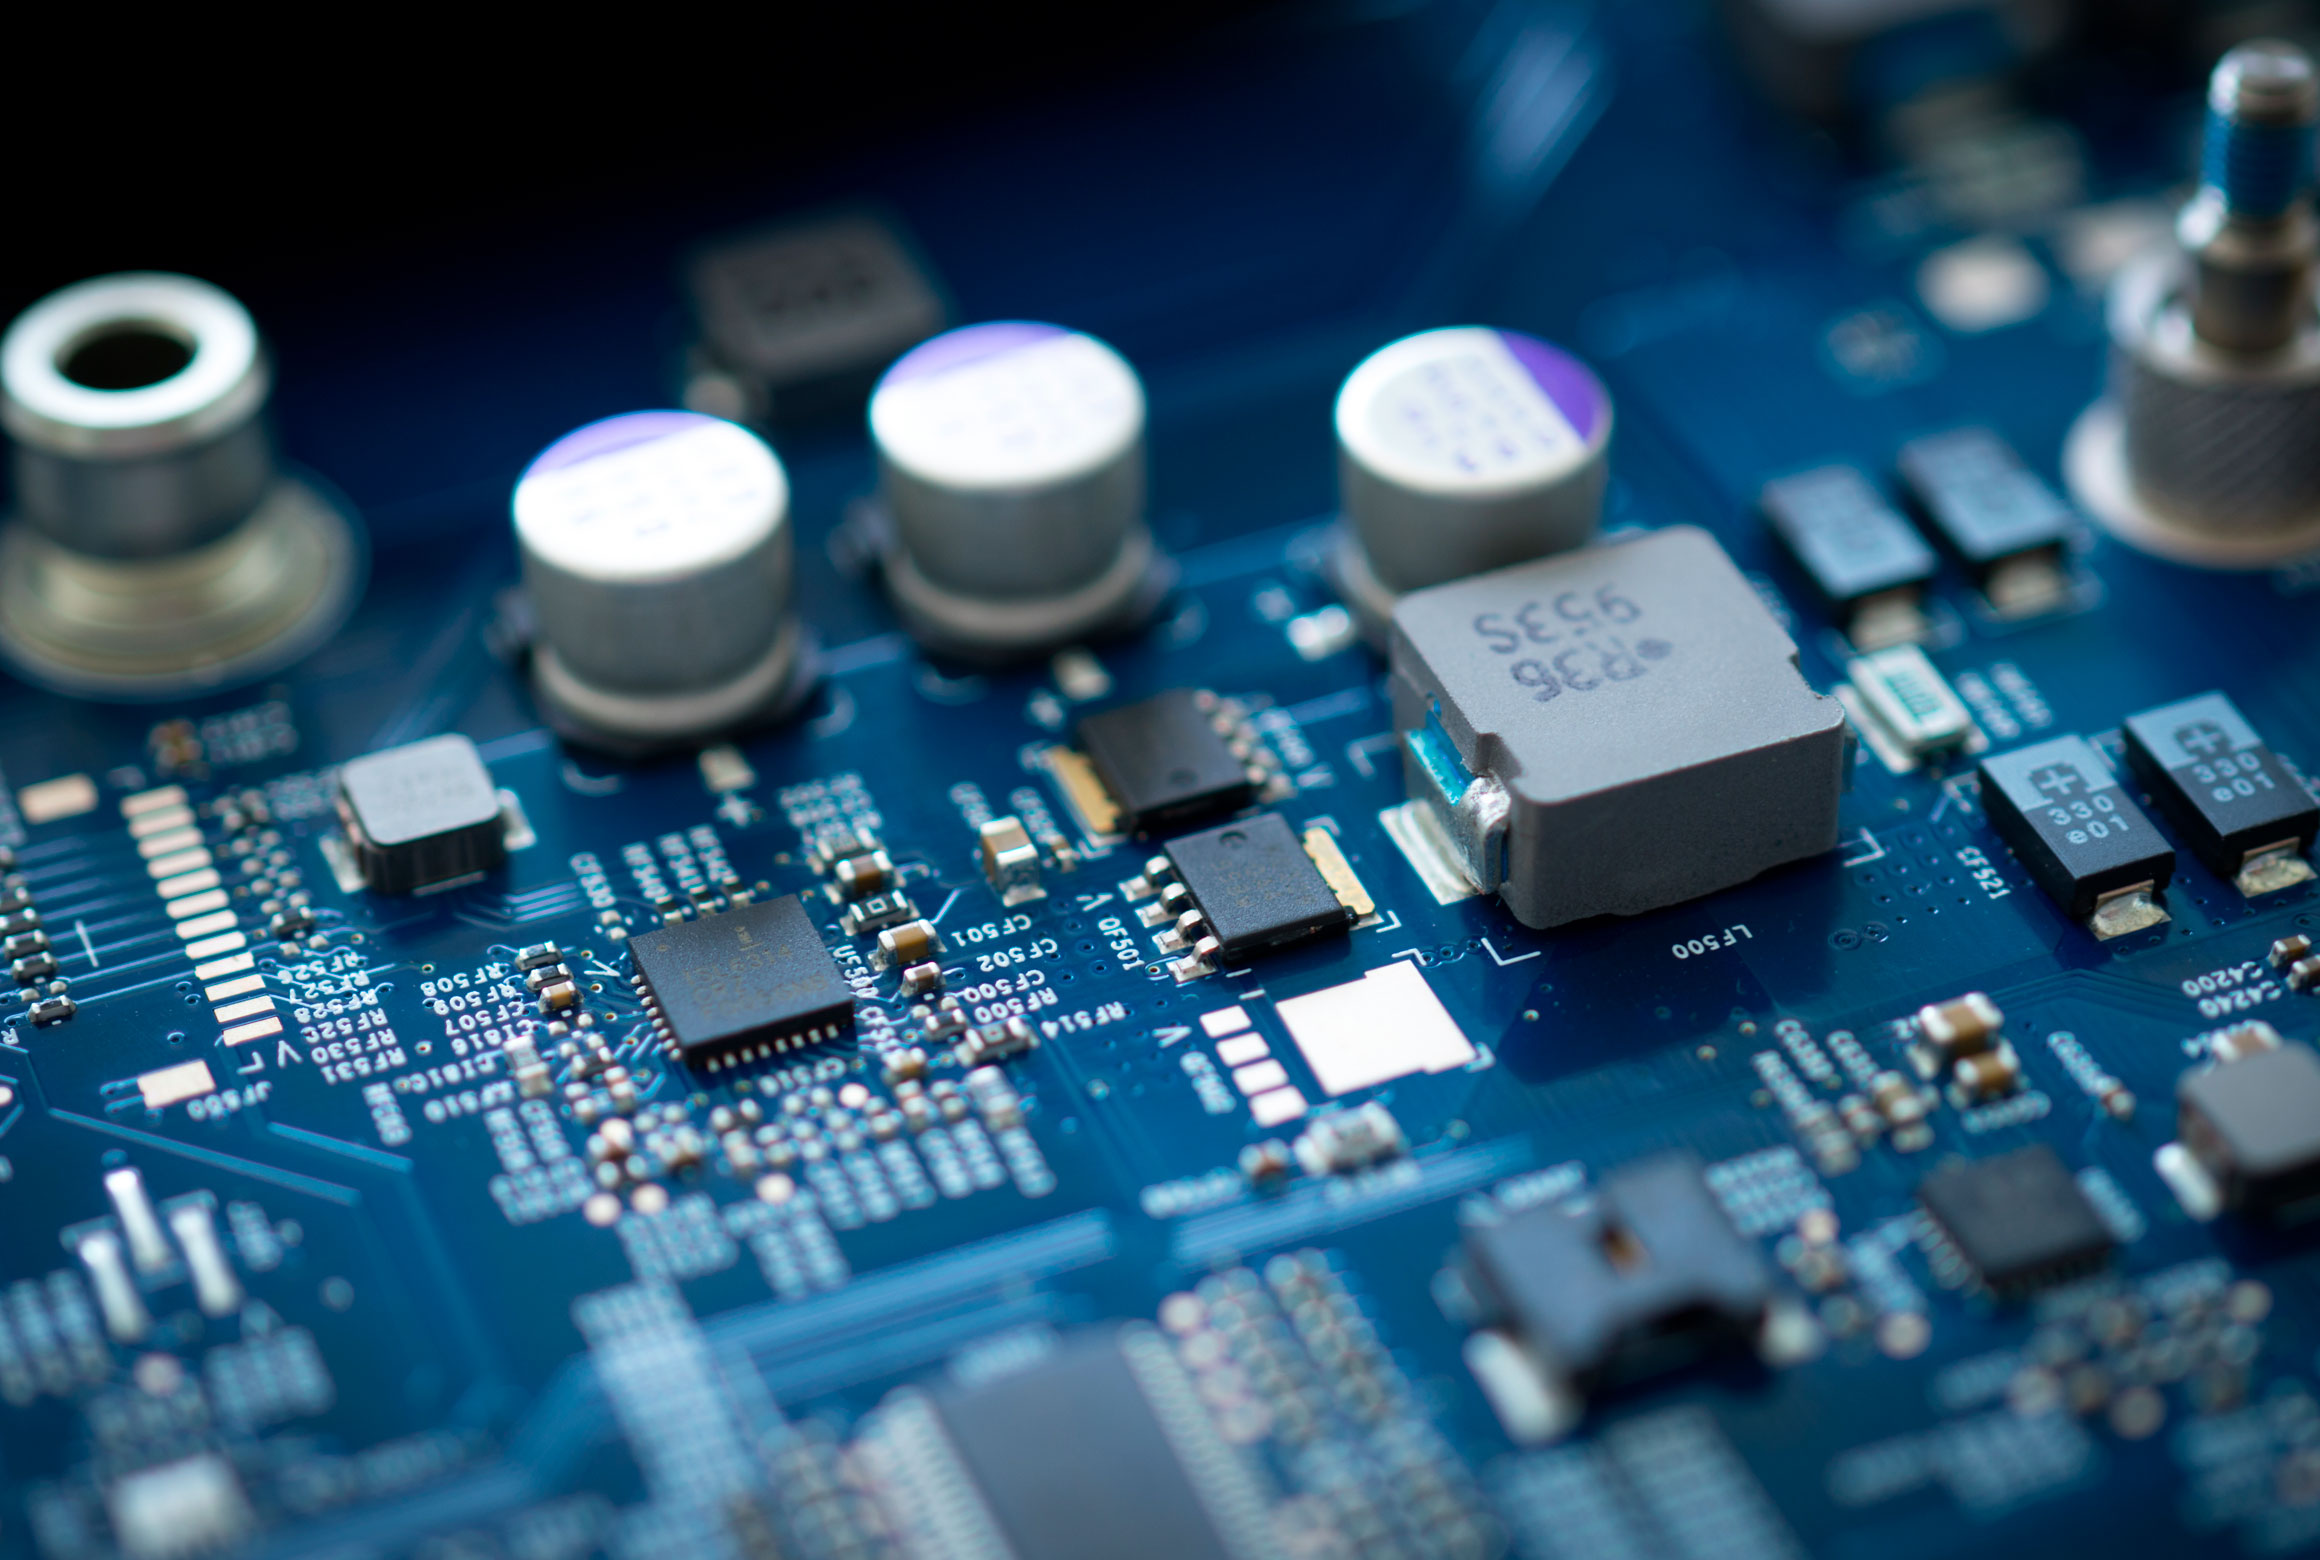 circuitboard with components soldered in place